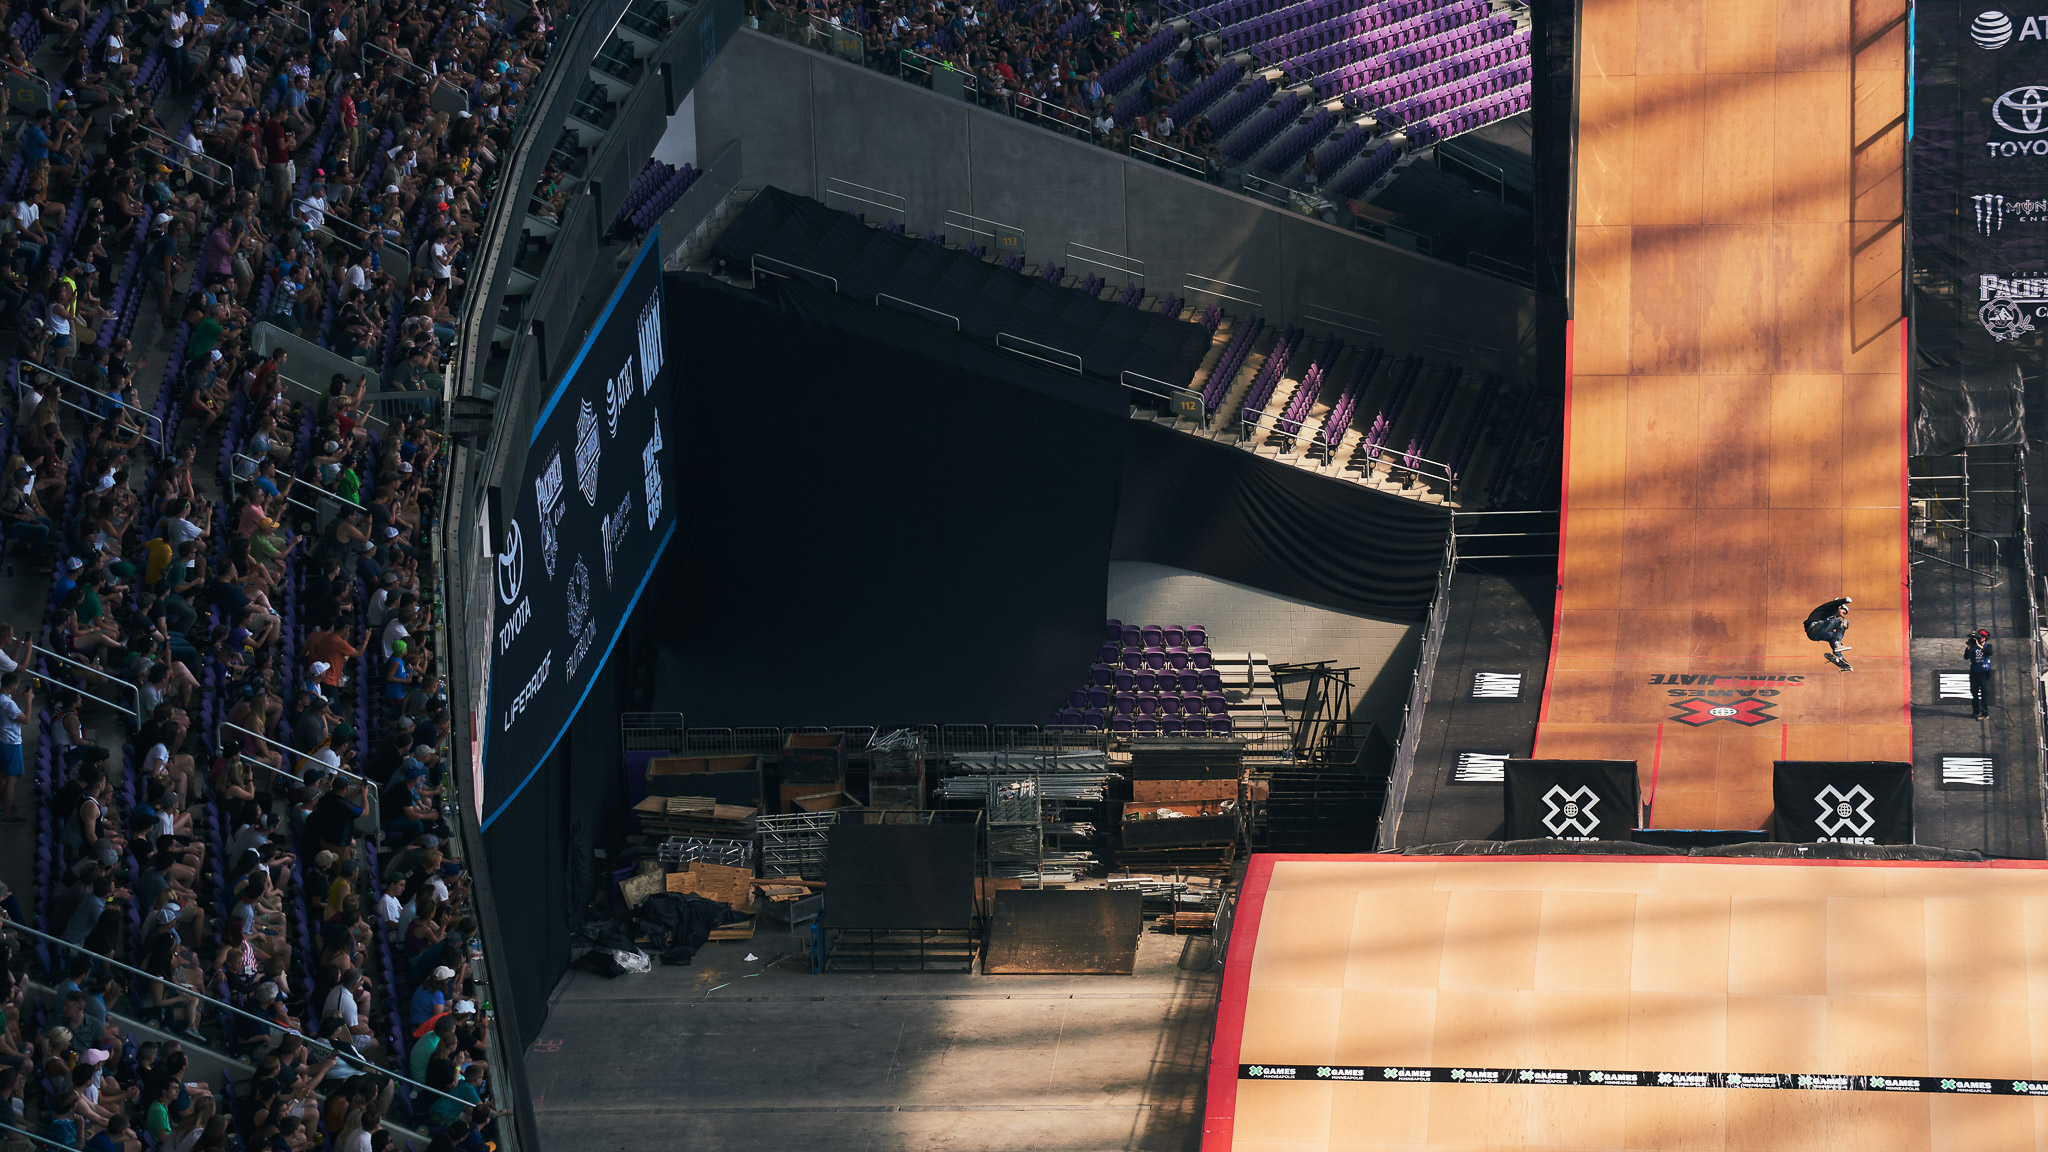 Fans packed the U.S. Bank Stadium on Saturday for a long, exciting day of X Games firsts -- including a first-ever Moto X double backflip quarterpipe transfer and the youngest-ever gold medalist being crowned -- and lasts. After 26 X Games appearances, Bob Burnquist, pictured here, who competed in the very first X Games in 1995 and hasn't missed a Summer X event since, announced during the Skateboard Big Air broadcast that he will be retiring from X Games competition.